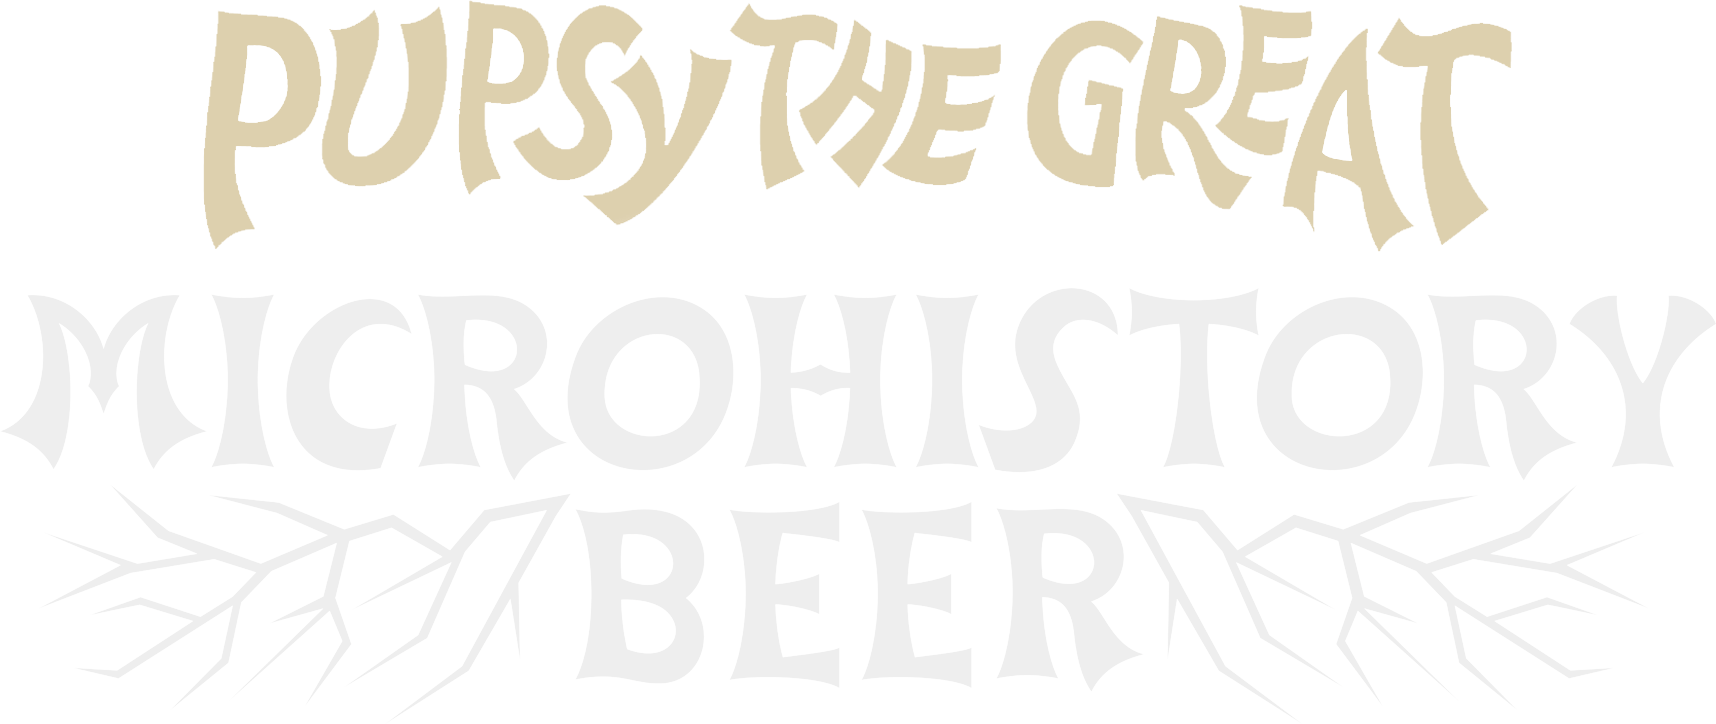 pupsy-the-great-logo-microhistorybeer.com